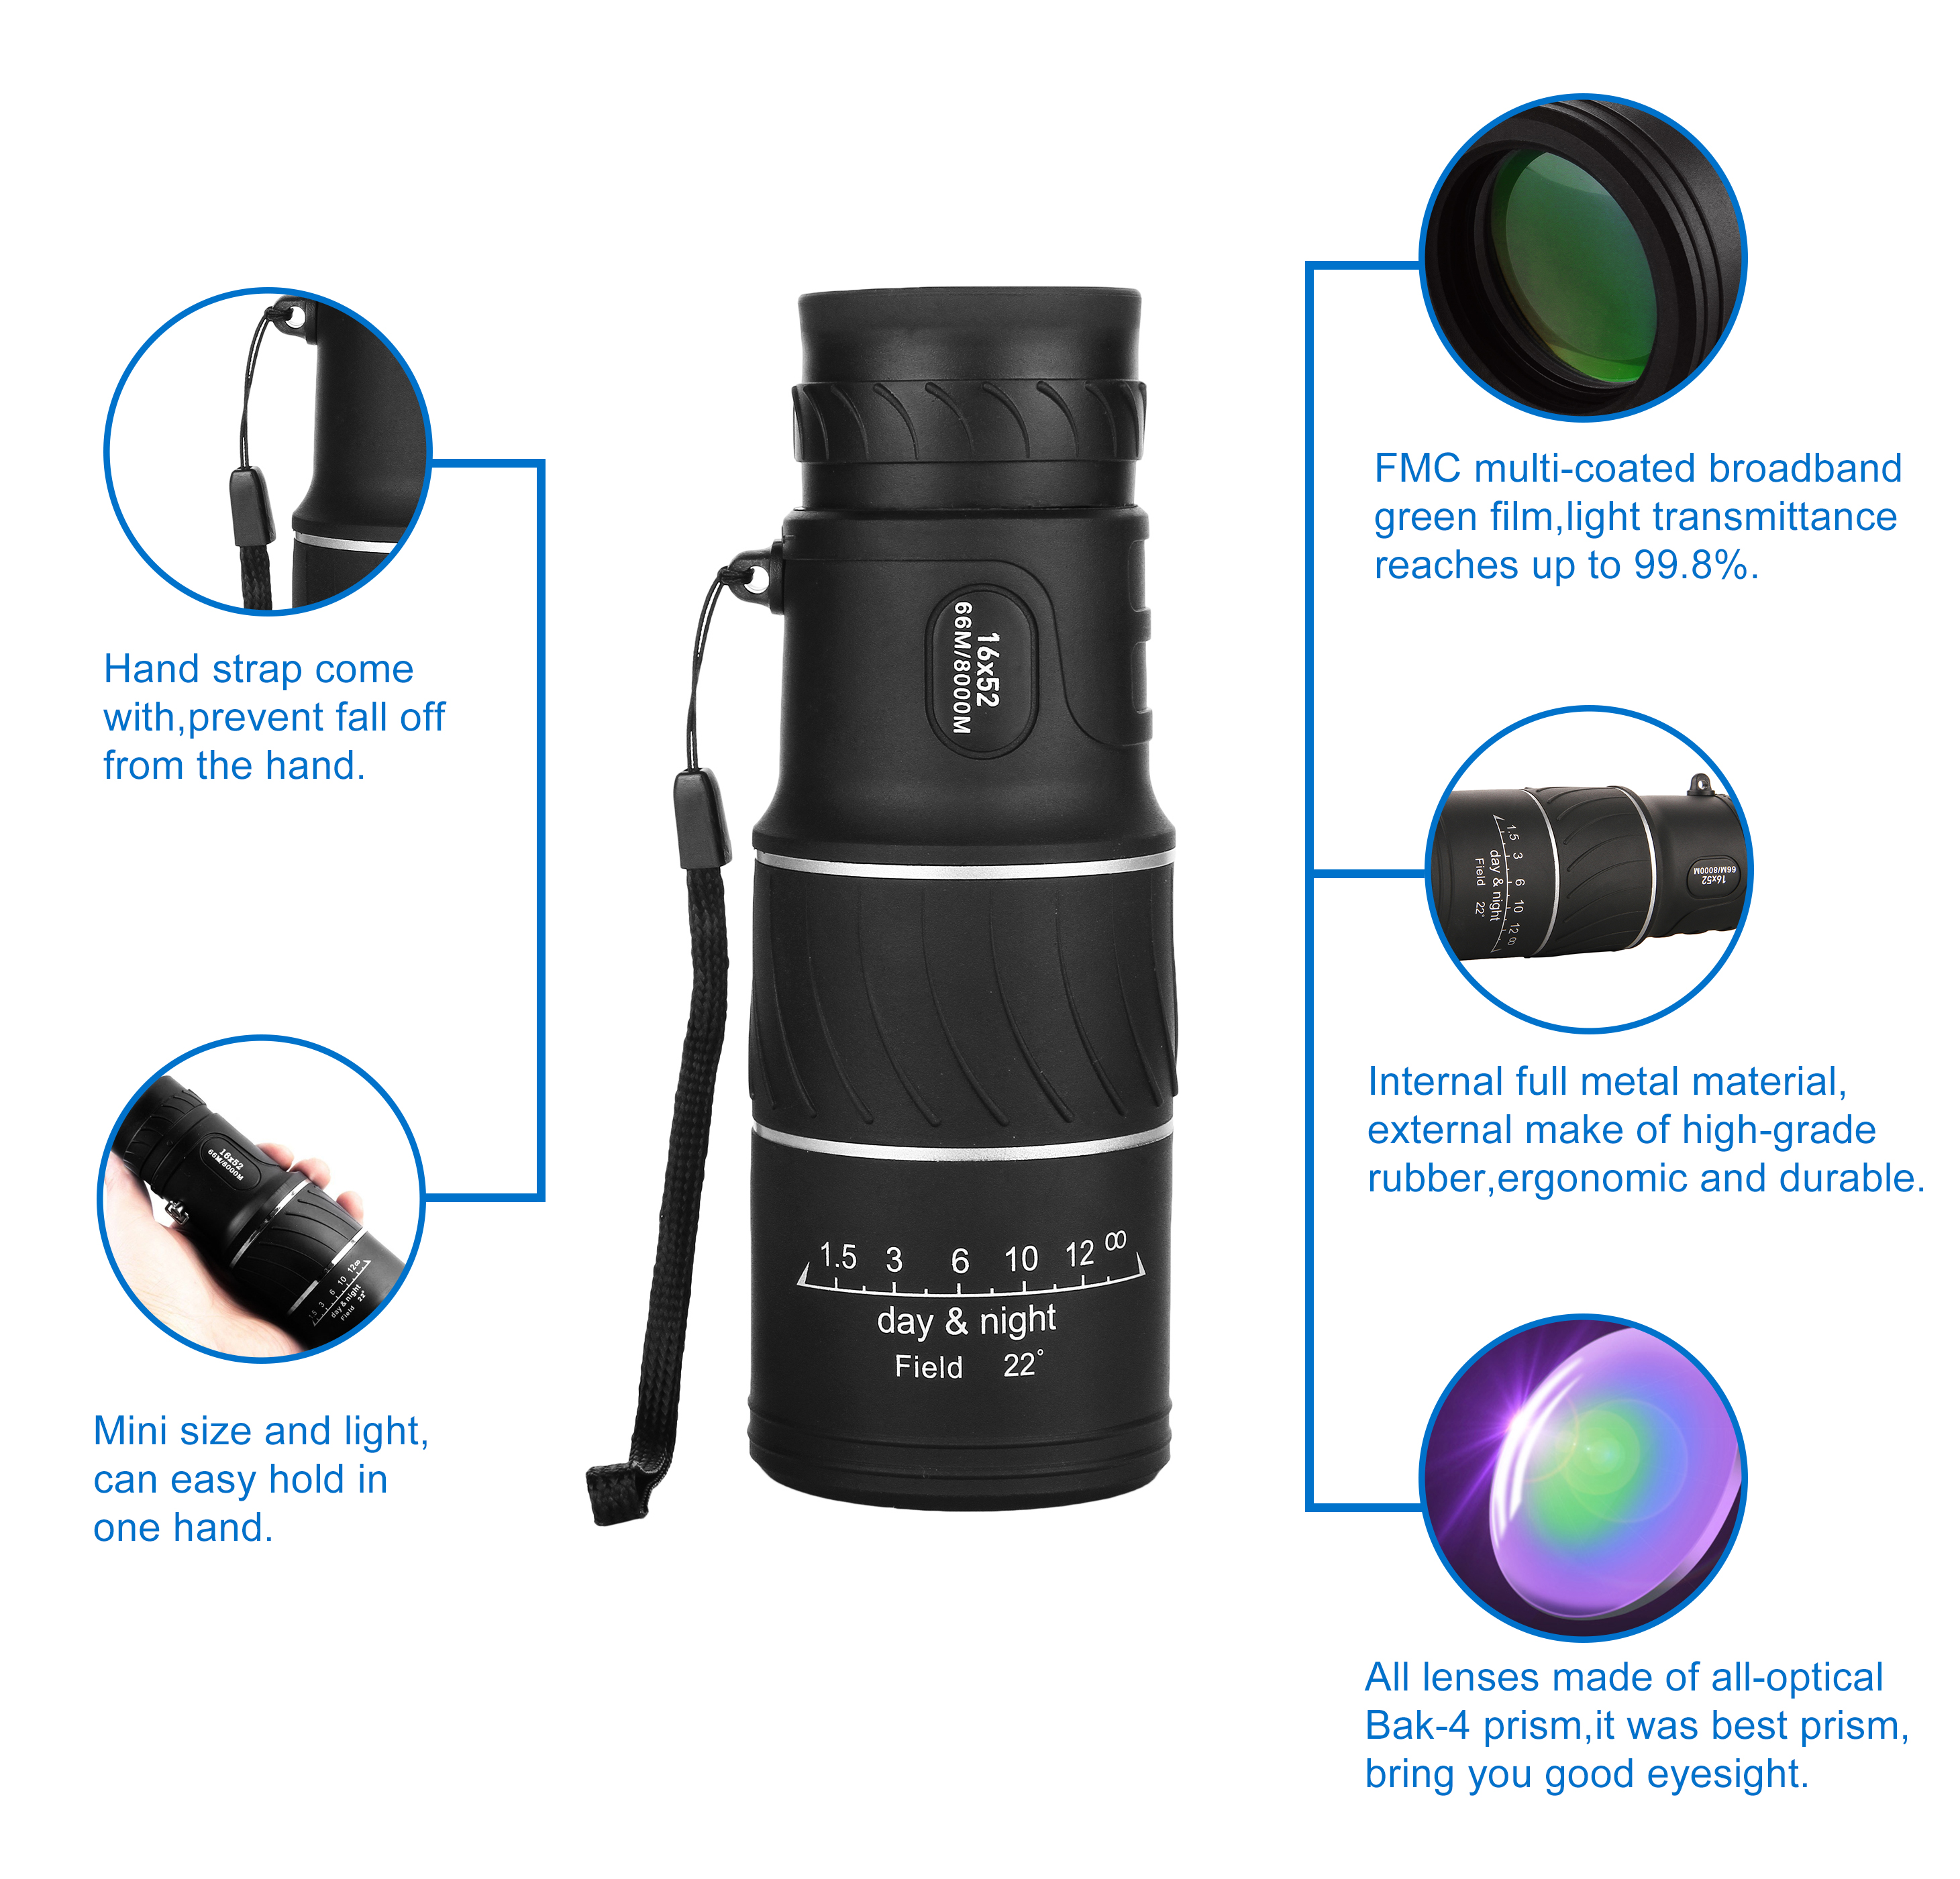 AOBETAK 16x52 Monocular Telescope, High Power Spotting Scopes Equipped With Phone Adaptor and Tripod, Low Light Night Vision Binoculars or Adults Kids Bird Watching Traveling, Outdoors 98m/ 8000m